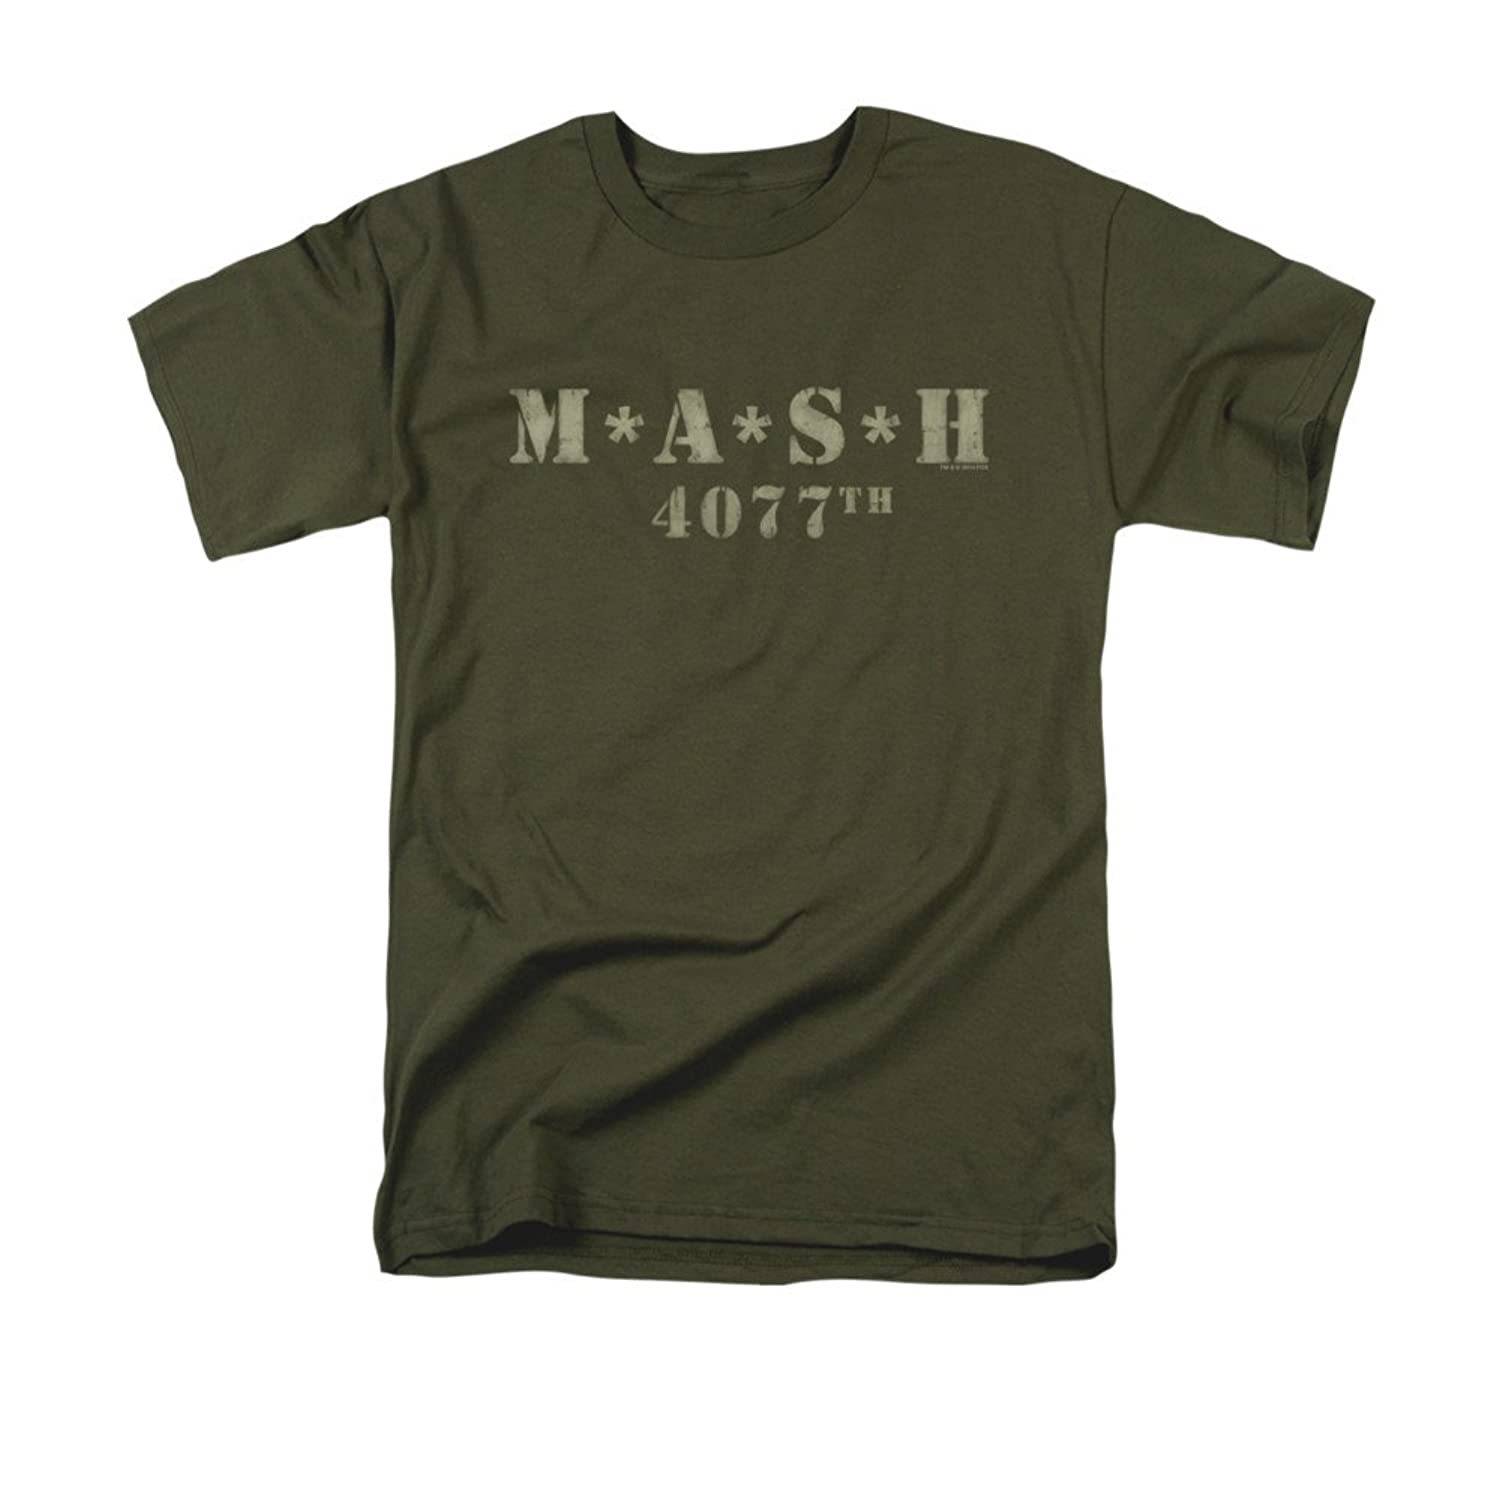 MASH 1970's War Comedy TV Series Distressed Army Green Logo Adult T-Shirt